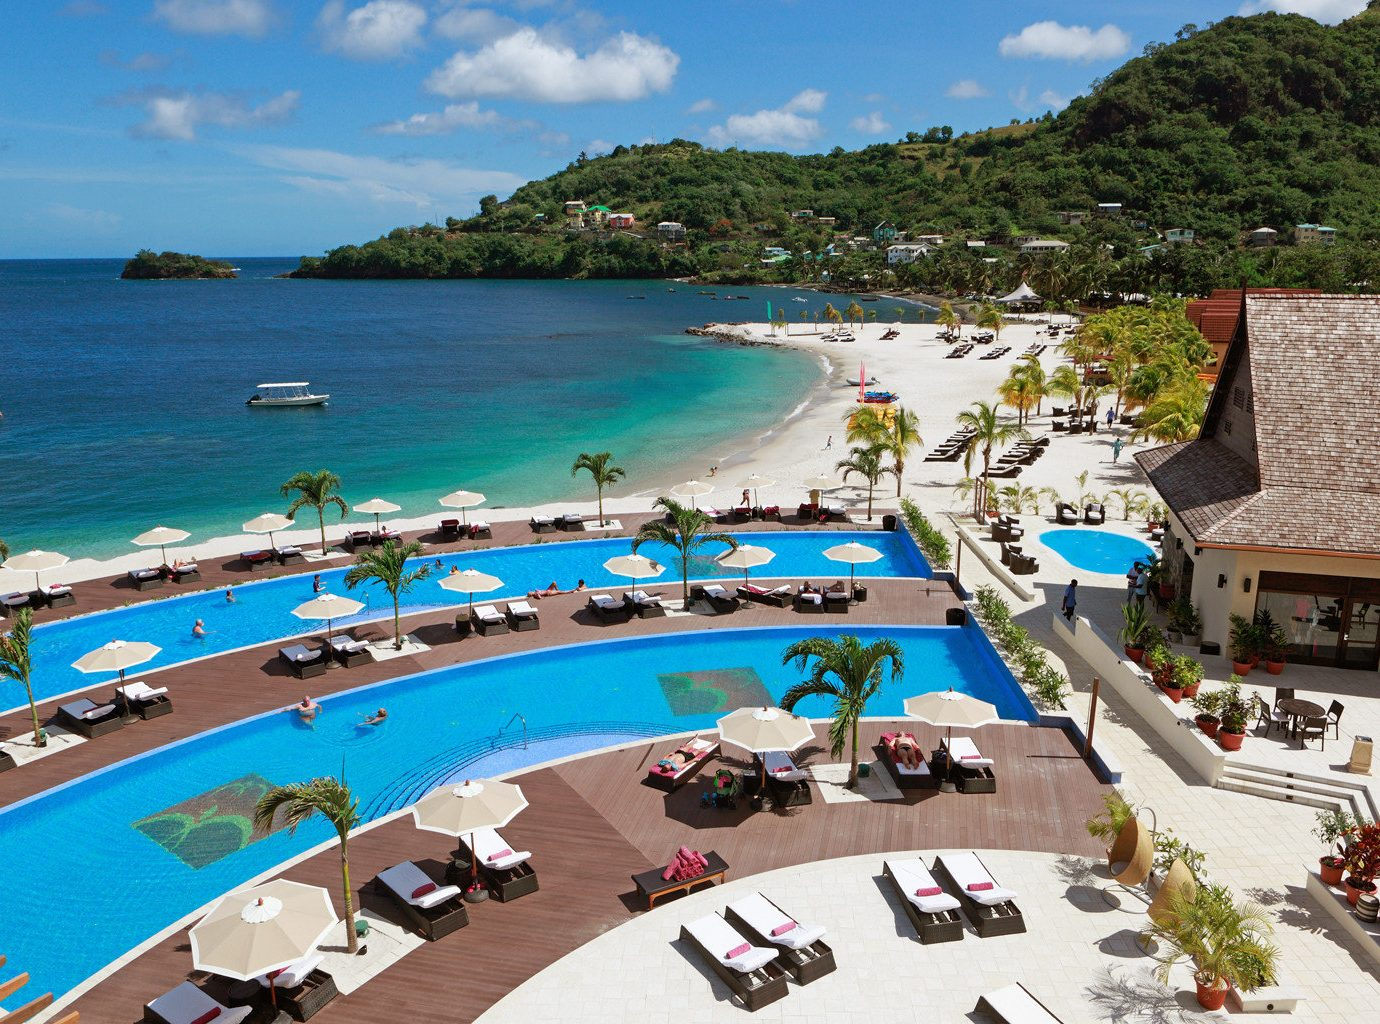 All-inclusive Beach Beachfront Exterior Family Grounds Lounge Patio Pool Resort Trip Ideas Tropical sky water outdoor leisure Nature vacation caribbean Sea tourism bay resort town Coast swimming pool estate Water park shore lined